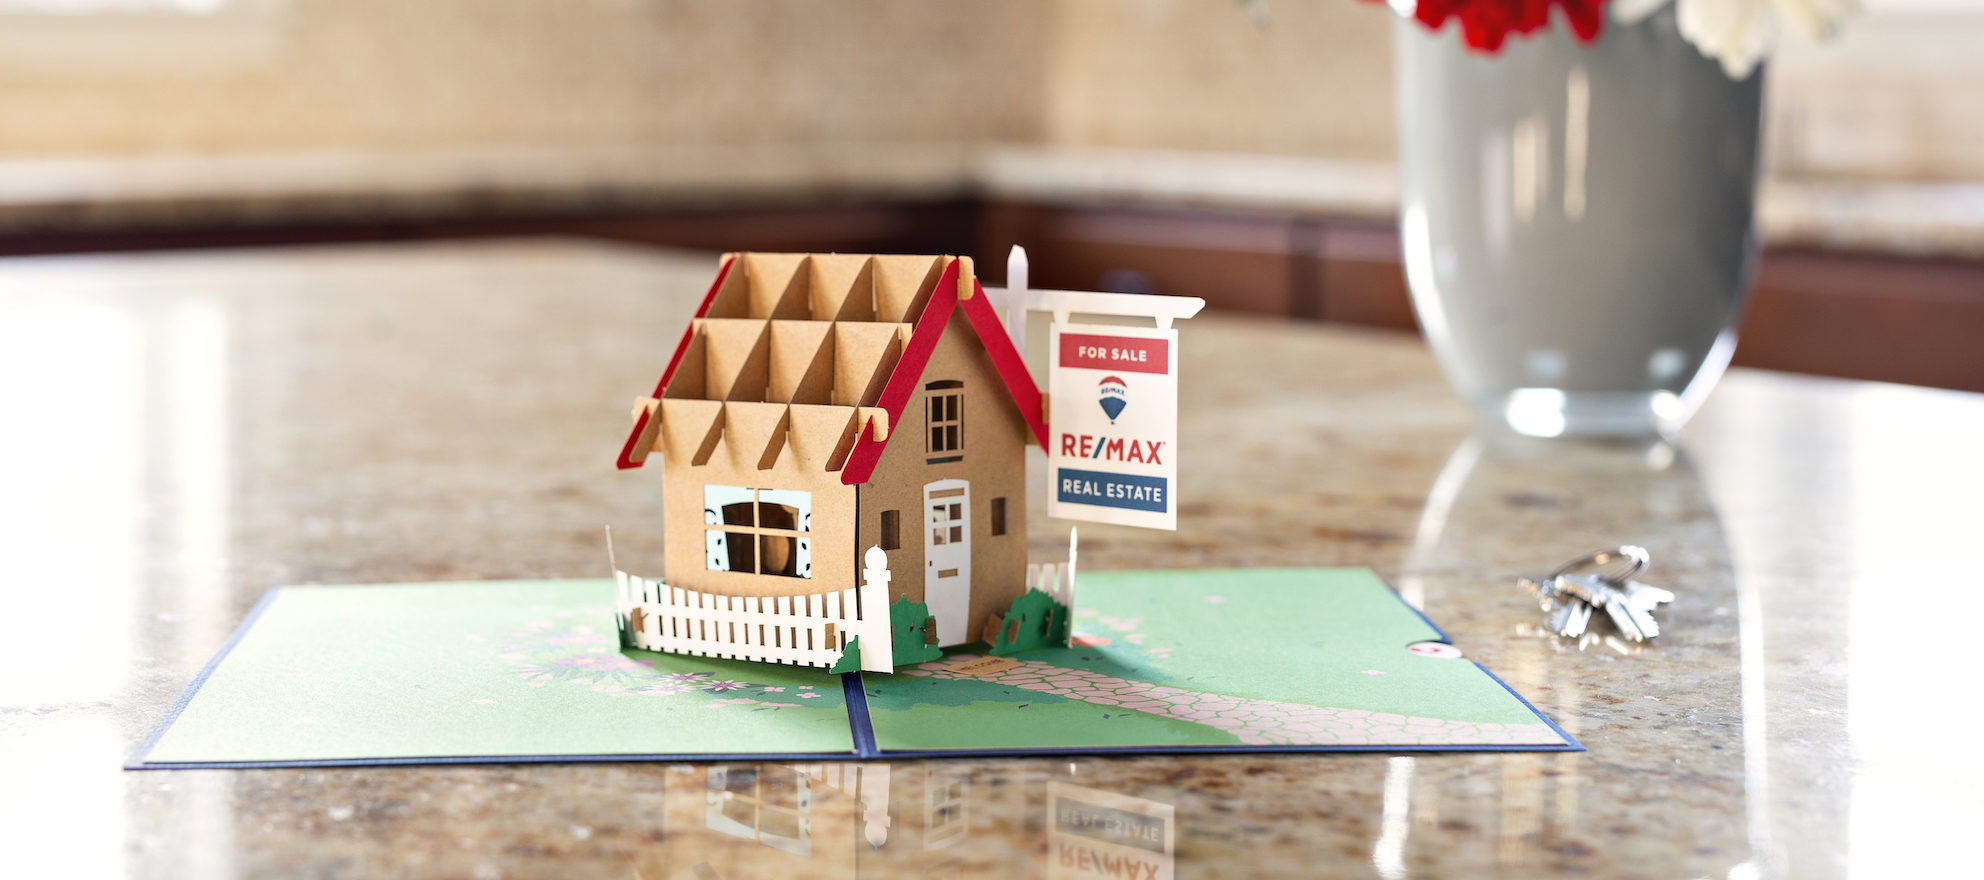 RE/MAX partnership gives agents discounts on really fancy cards